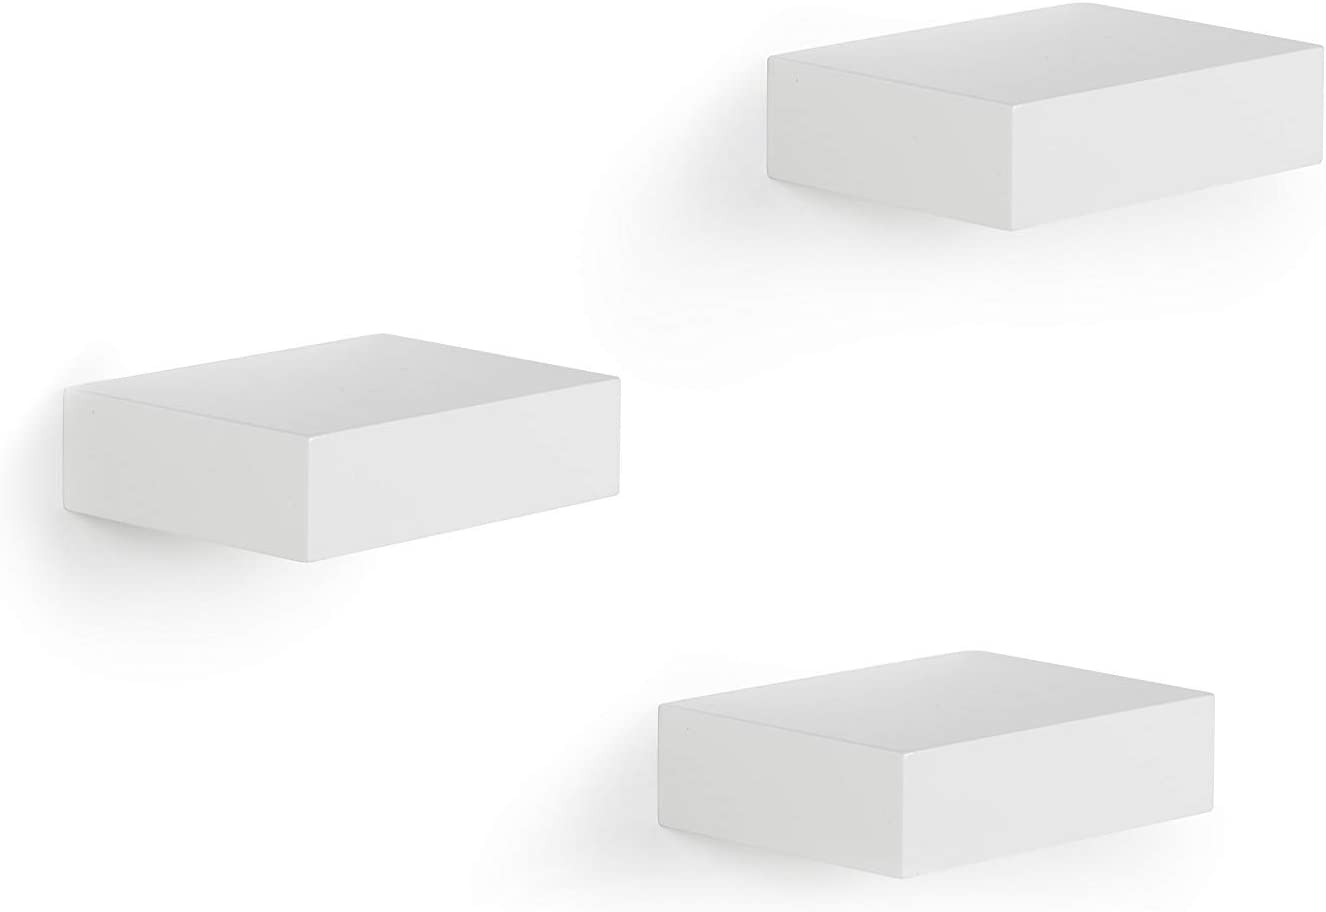 Ballucci Floating Wall Shelves, Set of 3 Decorative Display and Organizer Shelf with Hidden Bracket and Easy Installation, White